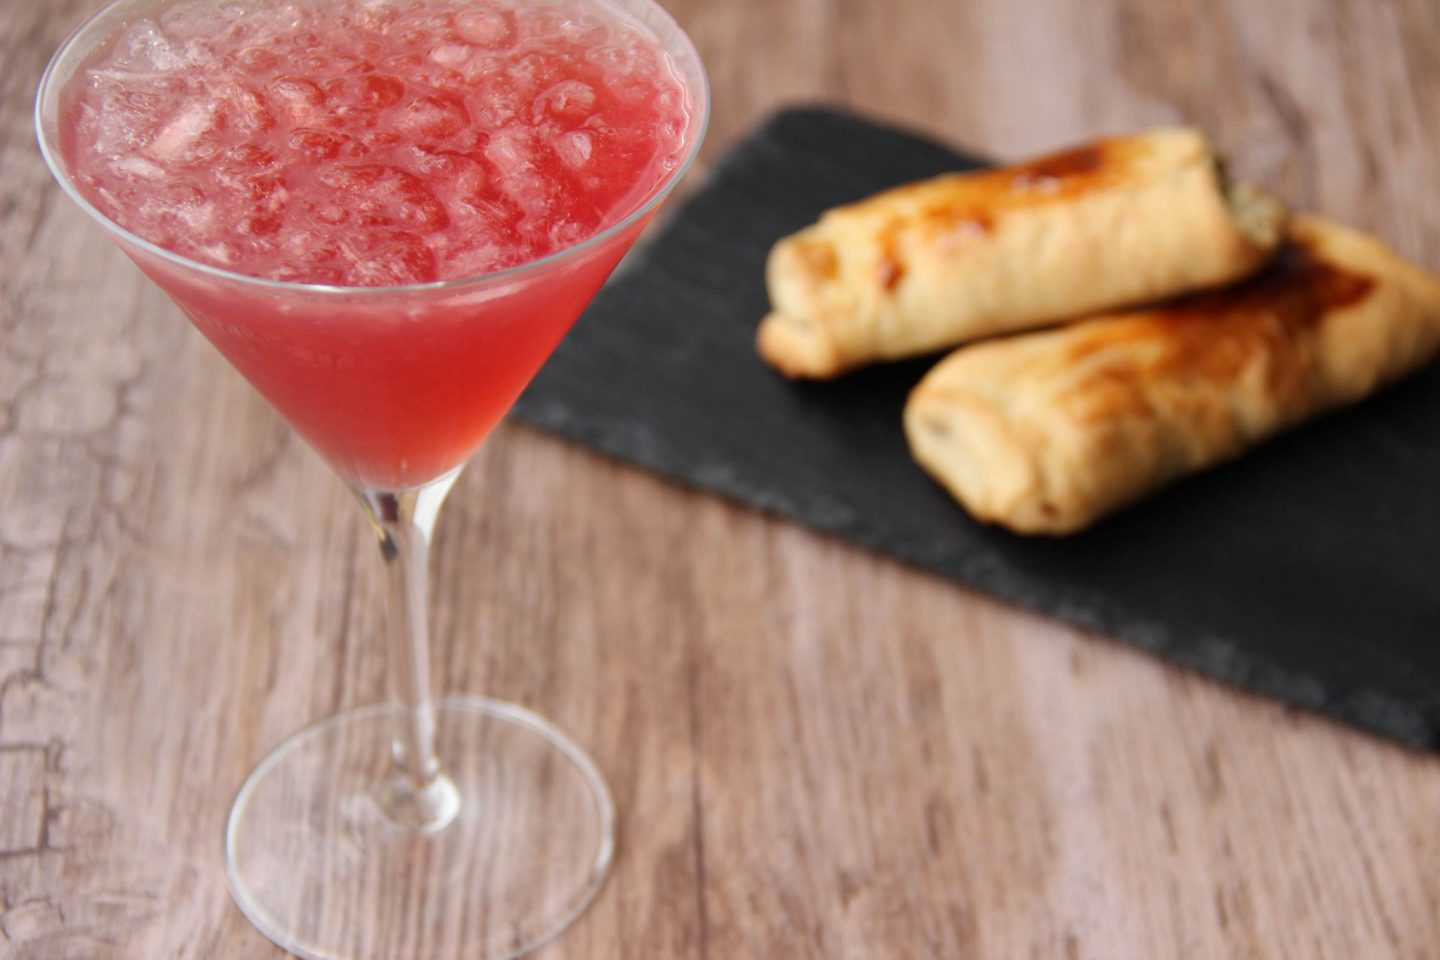 Chilling out cocktail and recipes strawberry cosmo and pain au chocolat